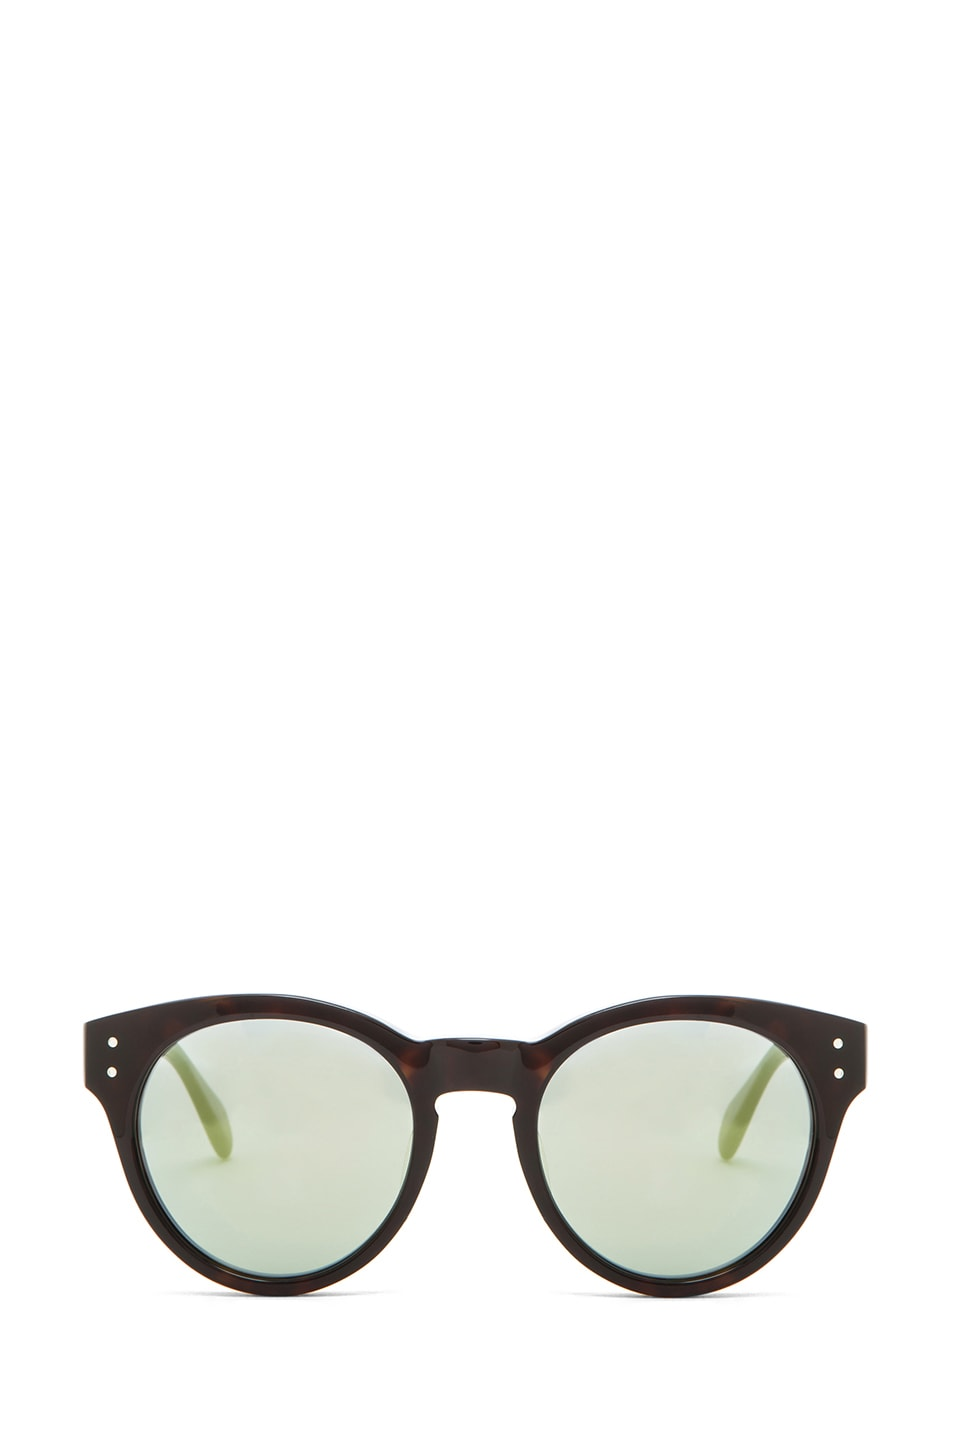 Image 1 of Oliver Peoples for Maison Kitsune Paris Sunglasses in Dark Tortoise